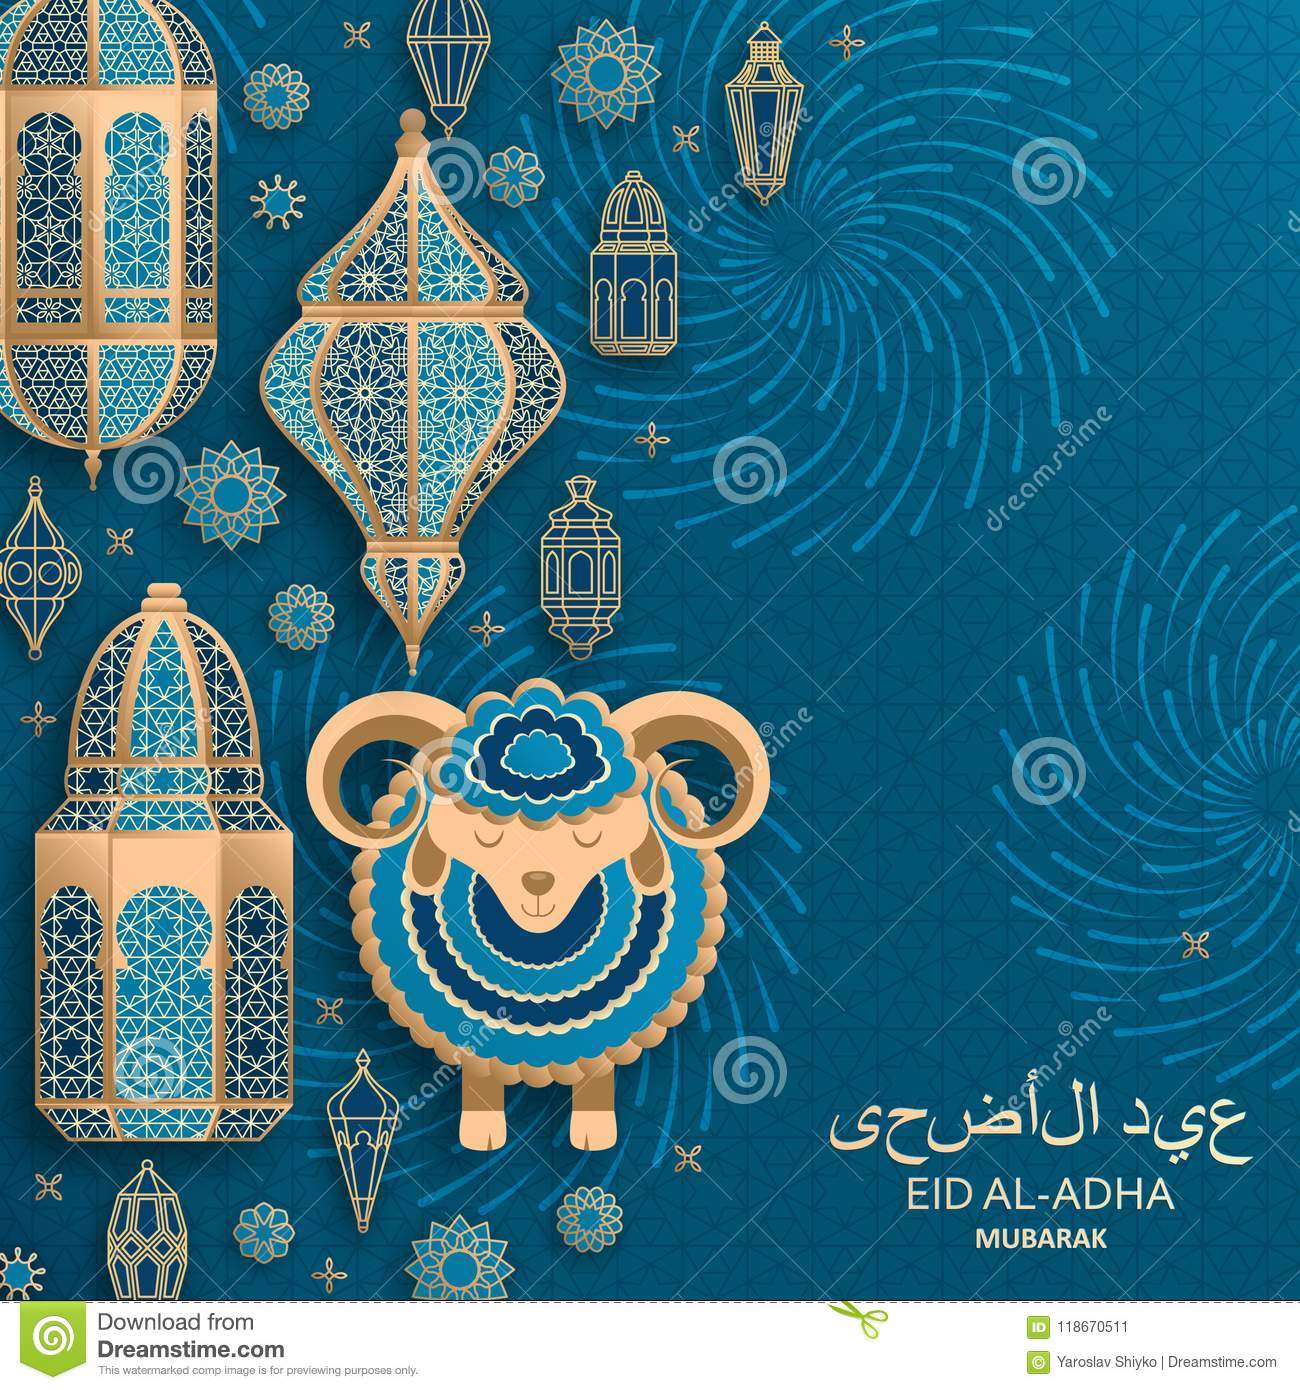 eid al adha background islamic arabic lanterns and sheep translation eid al adha greeting card stock vector illustration of culture arabic 118670511 https www dreamstime com eid al adha background islamic arabic lanterns sheep translation eid al adha greeting card eid al adha background islamic image118670511